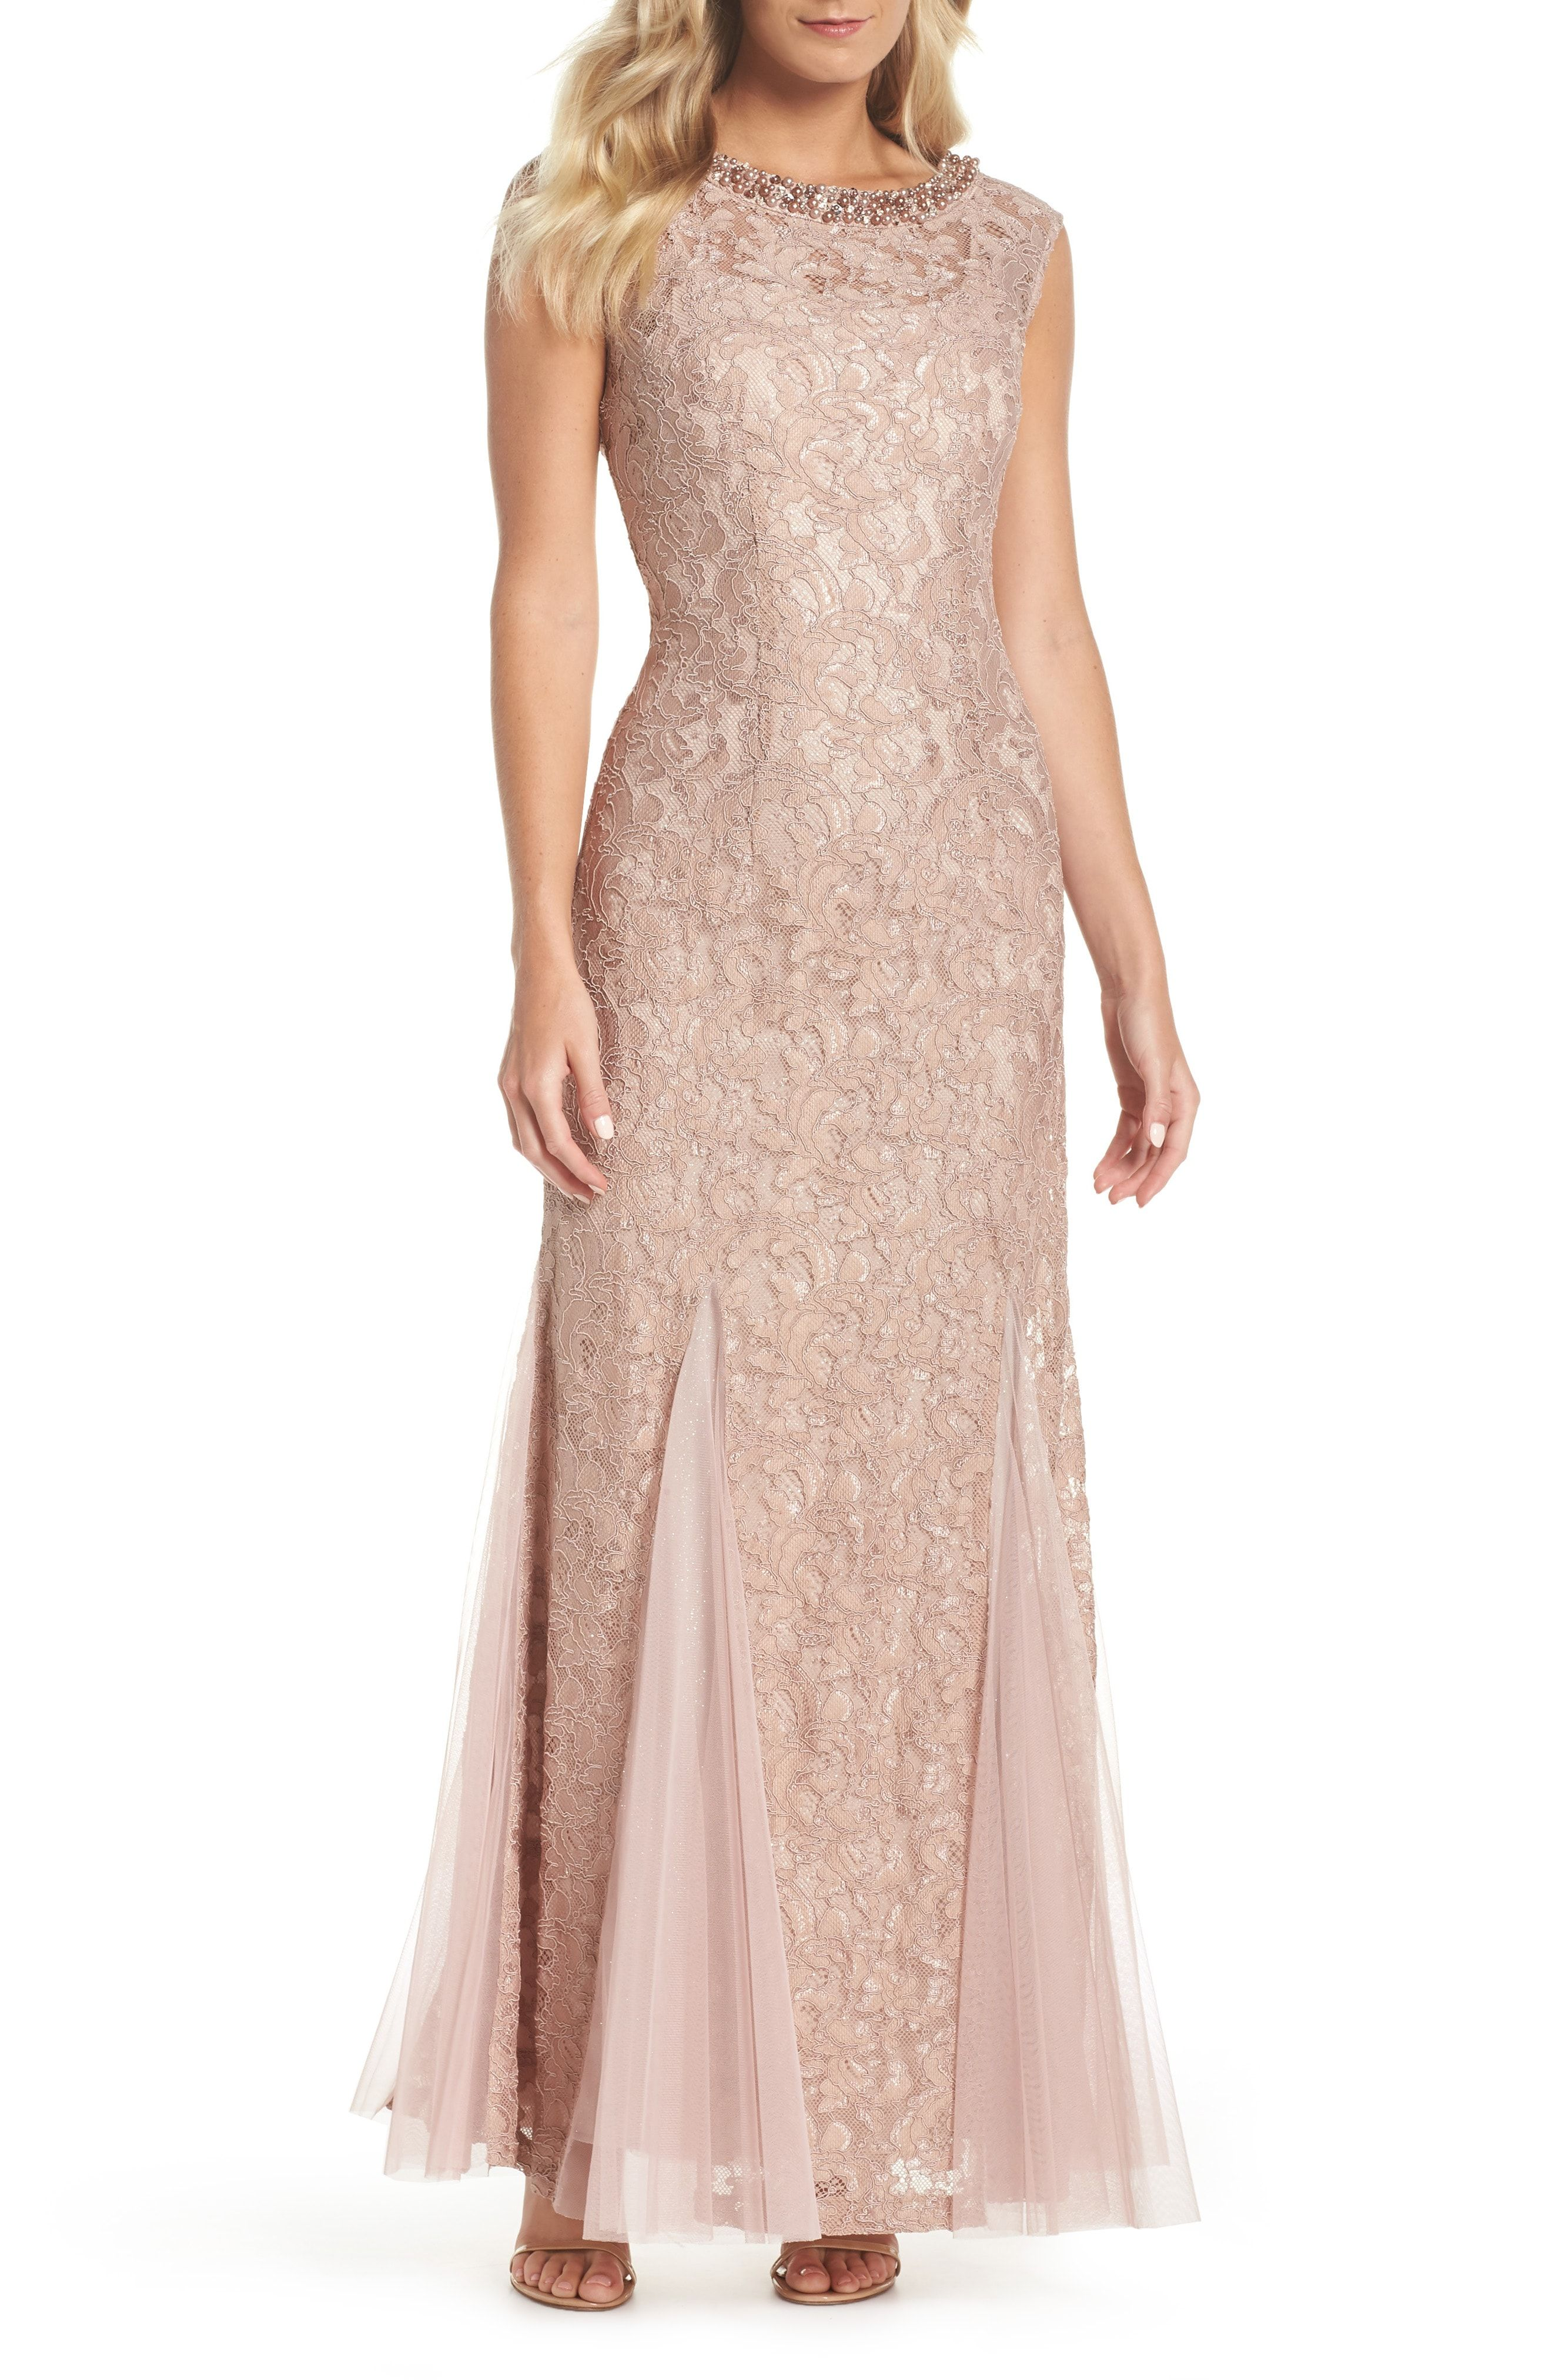 597c0272e69 Neutral lace mother of the bride dress - Alex Evenings Tulle   Lace Gown   affiliate  motherofthebride  motherofthebridedresses  weddings